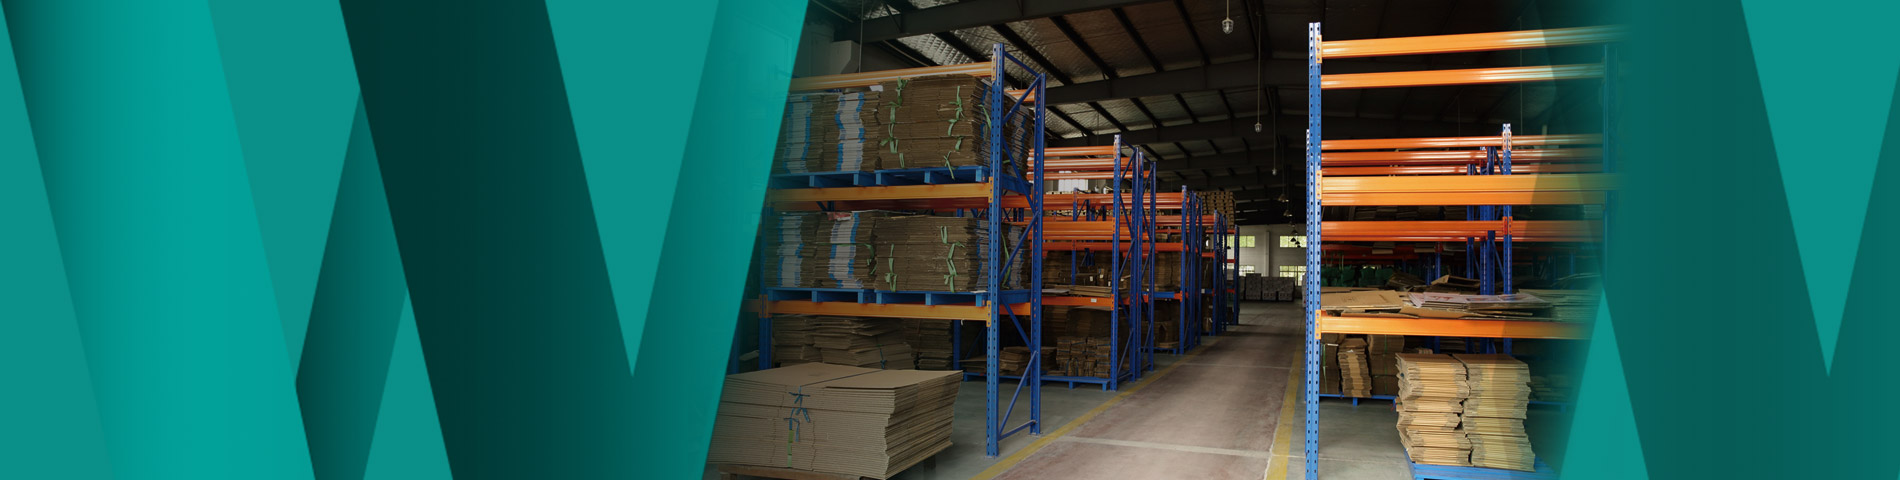 Systematic and Organized Warehouse